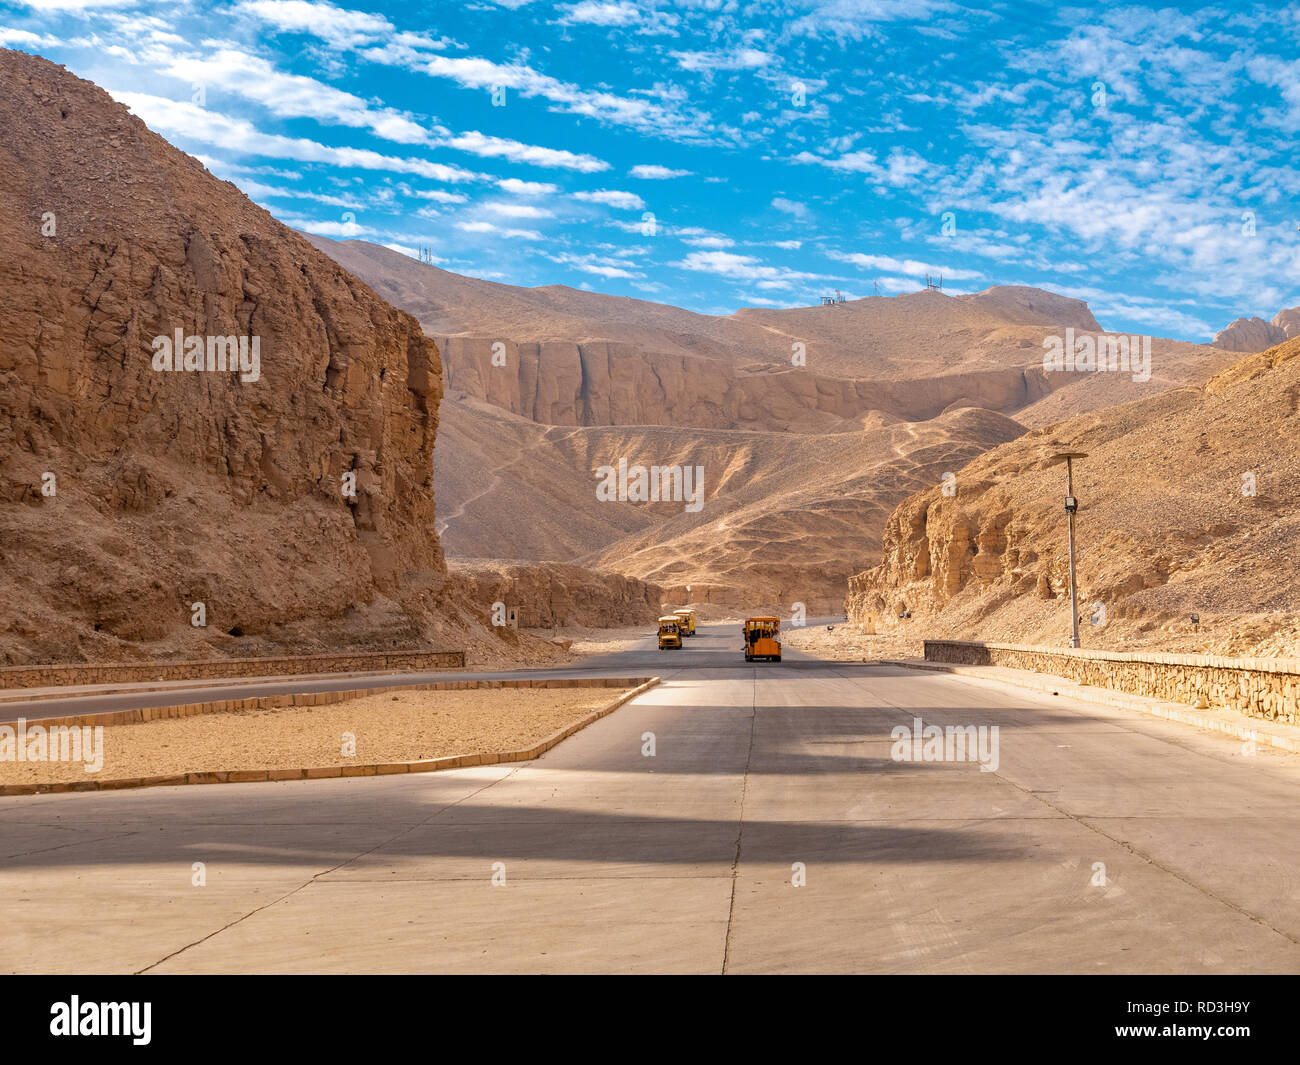 Valley of The Kings Luxor Egypt - Stock Image